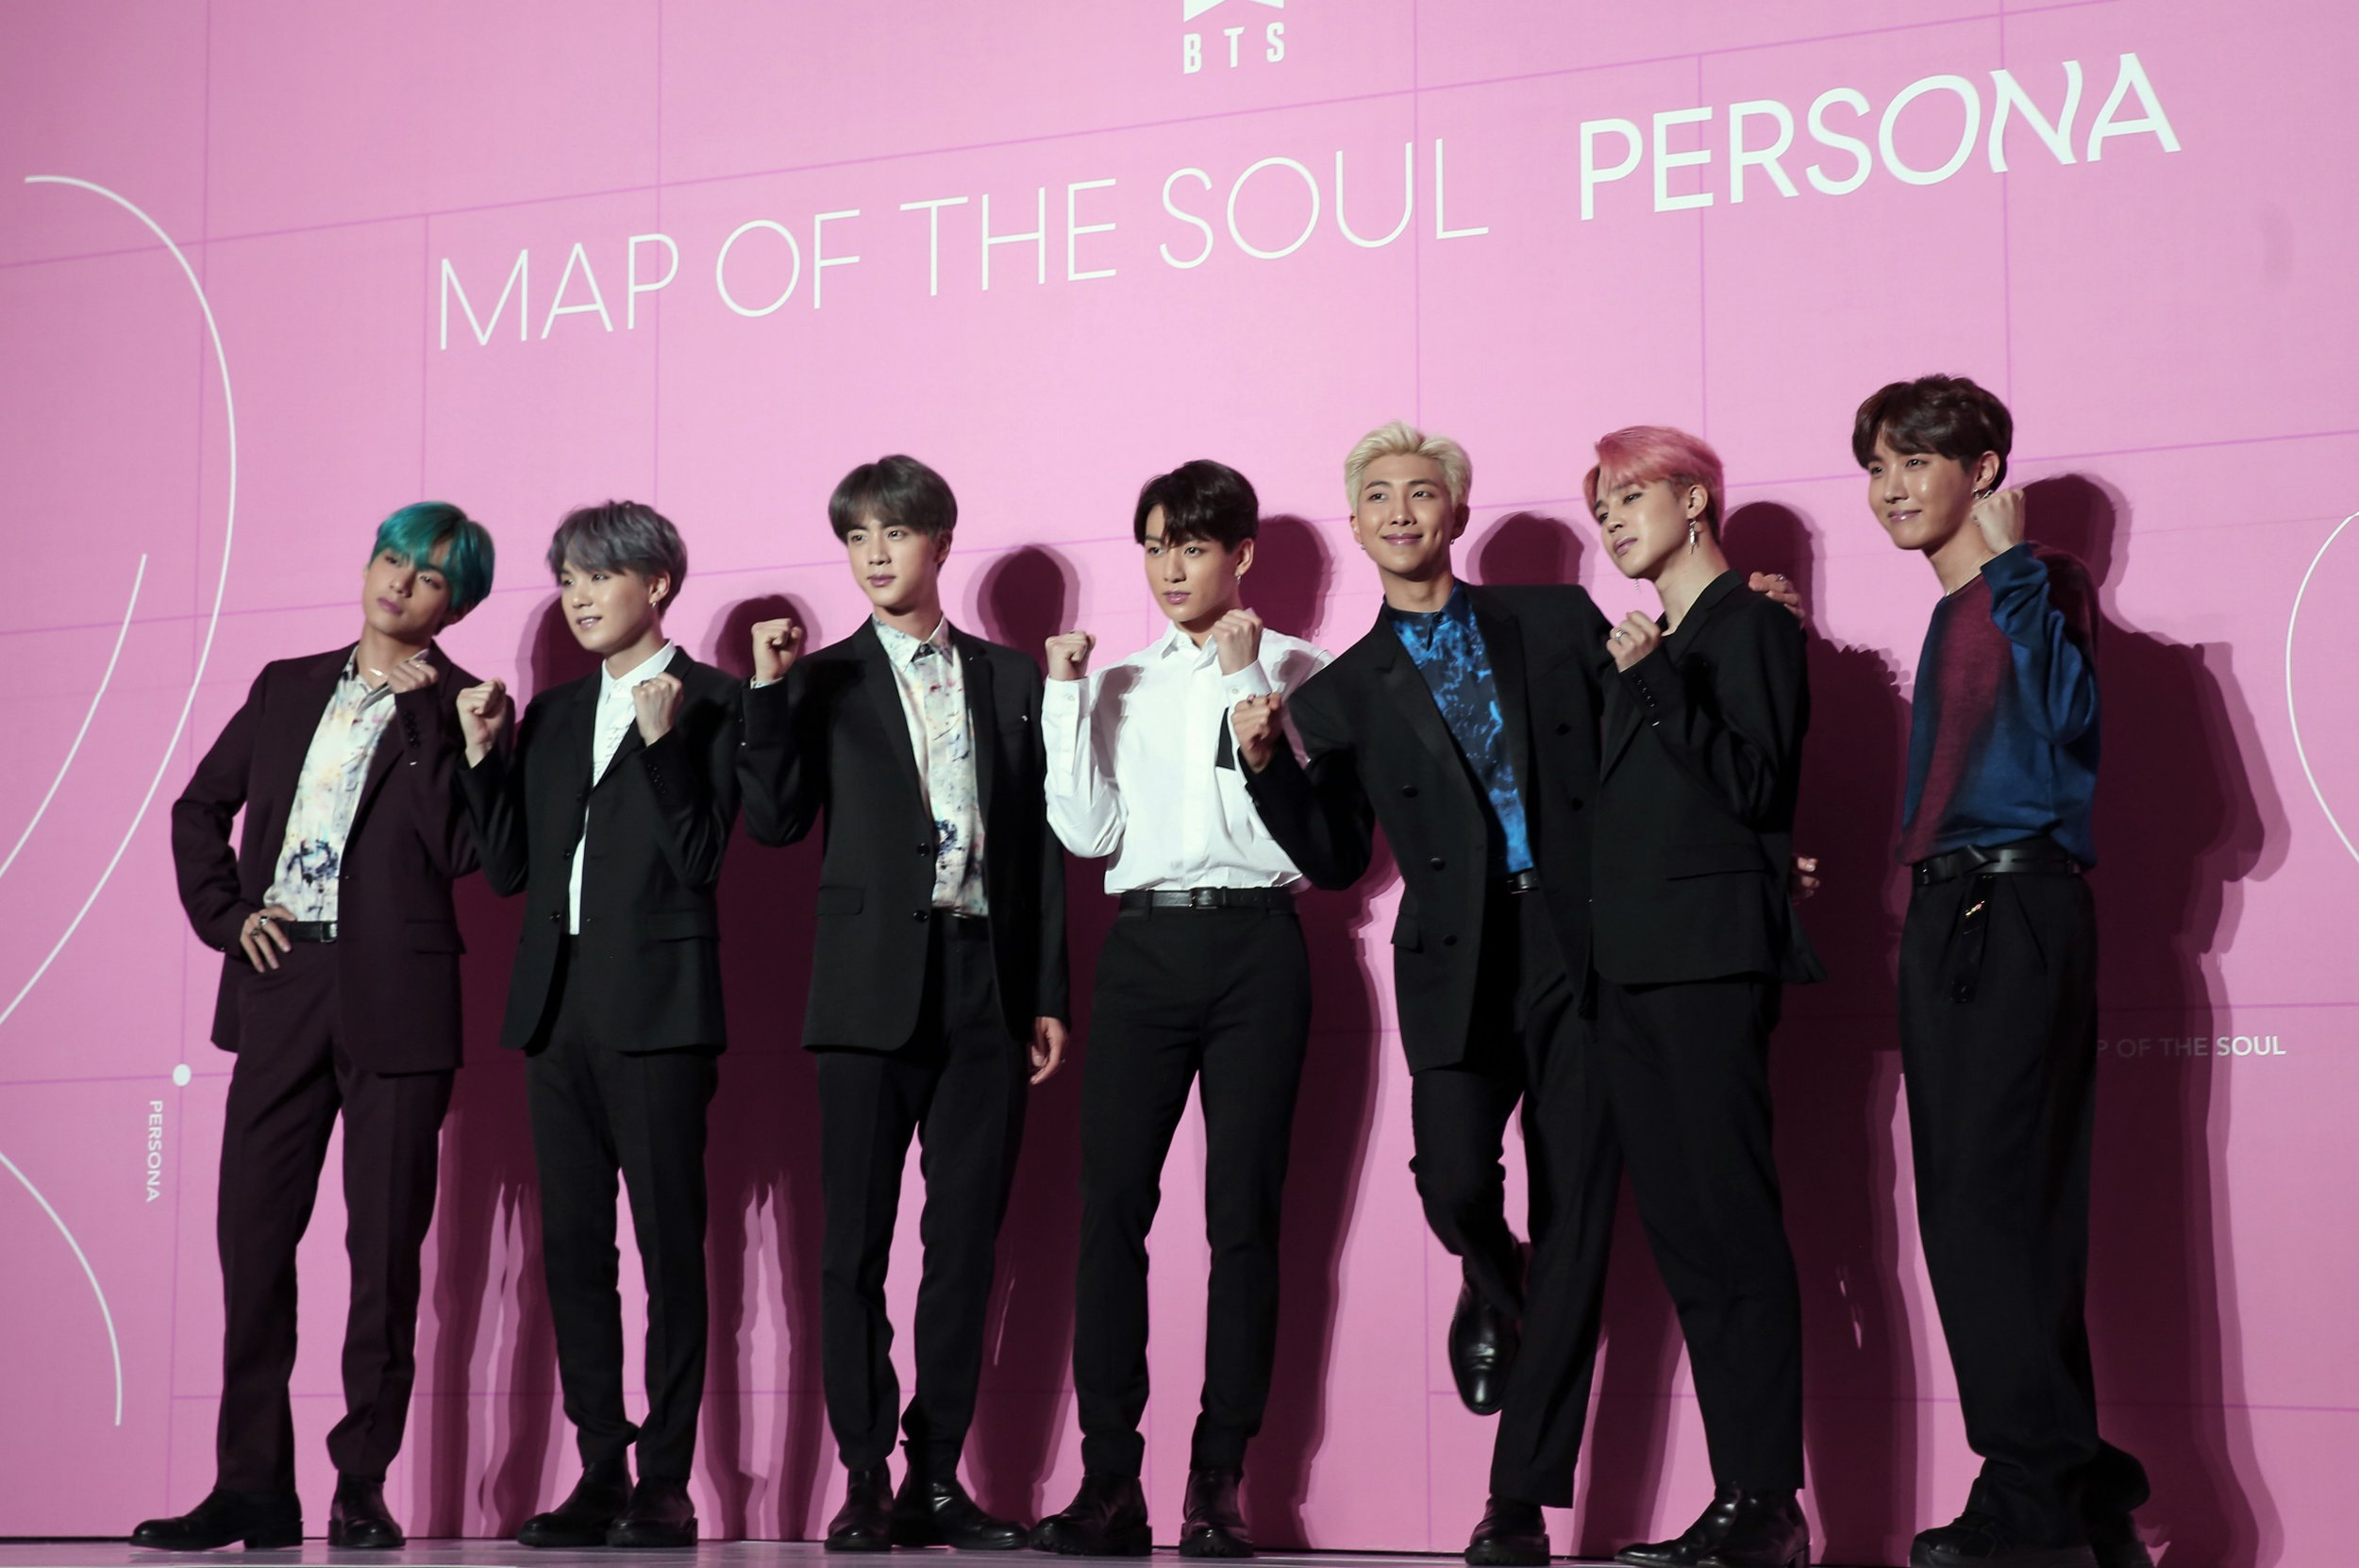 "Members of South Korean K-Pop group BTS pose for photos during a press conference to introduce their new album ""Map of the Soul: Persona"" in Seoul, South Korea, Wednesday, April 17, 2019. (Lee Jae-hee/Yonhap via AP)"